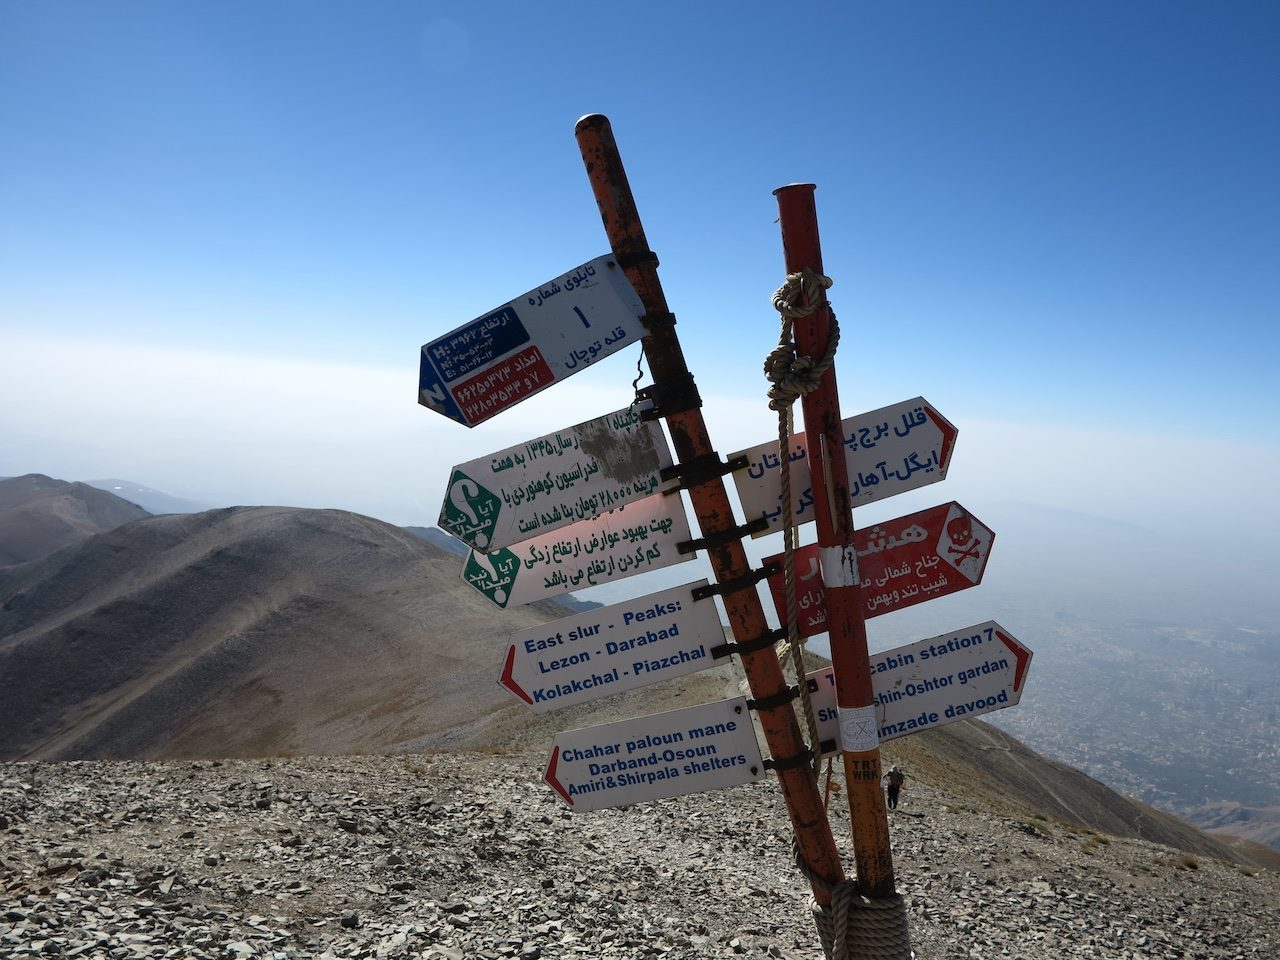 SIgn post showing many places